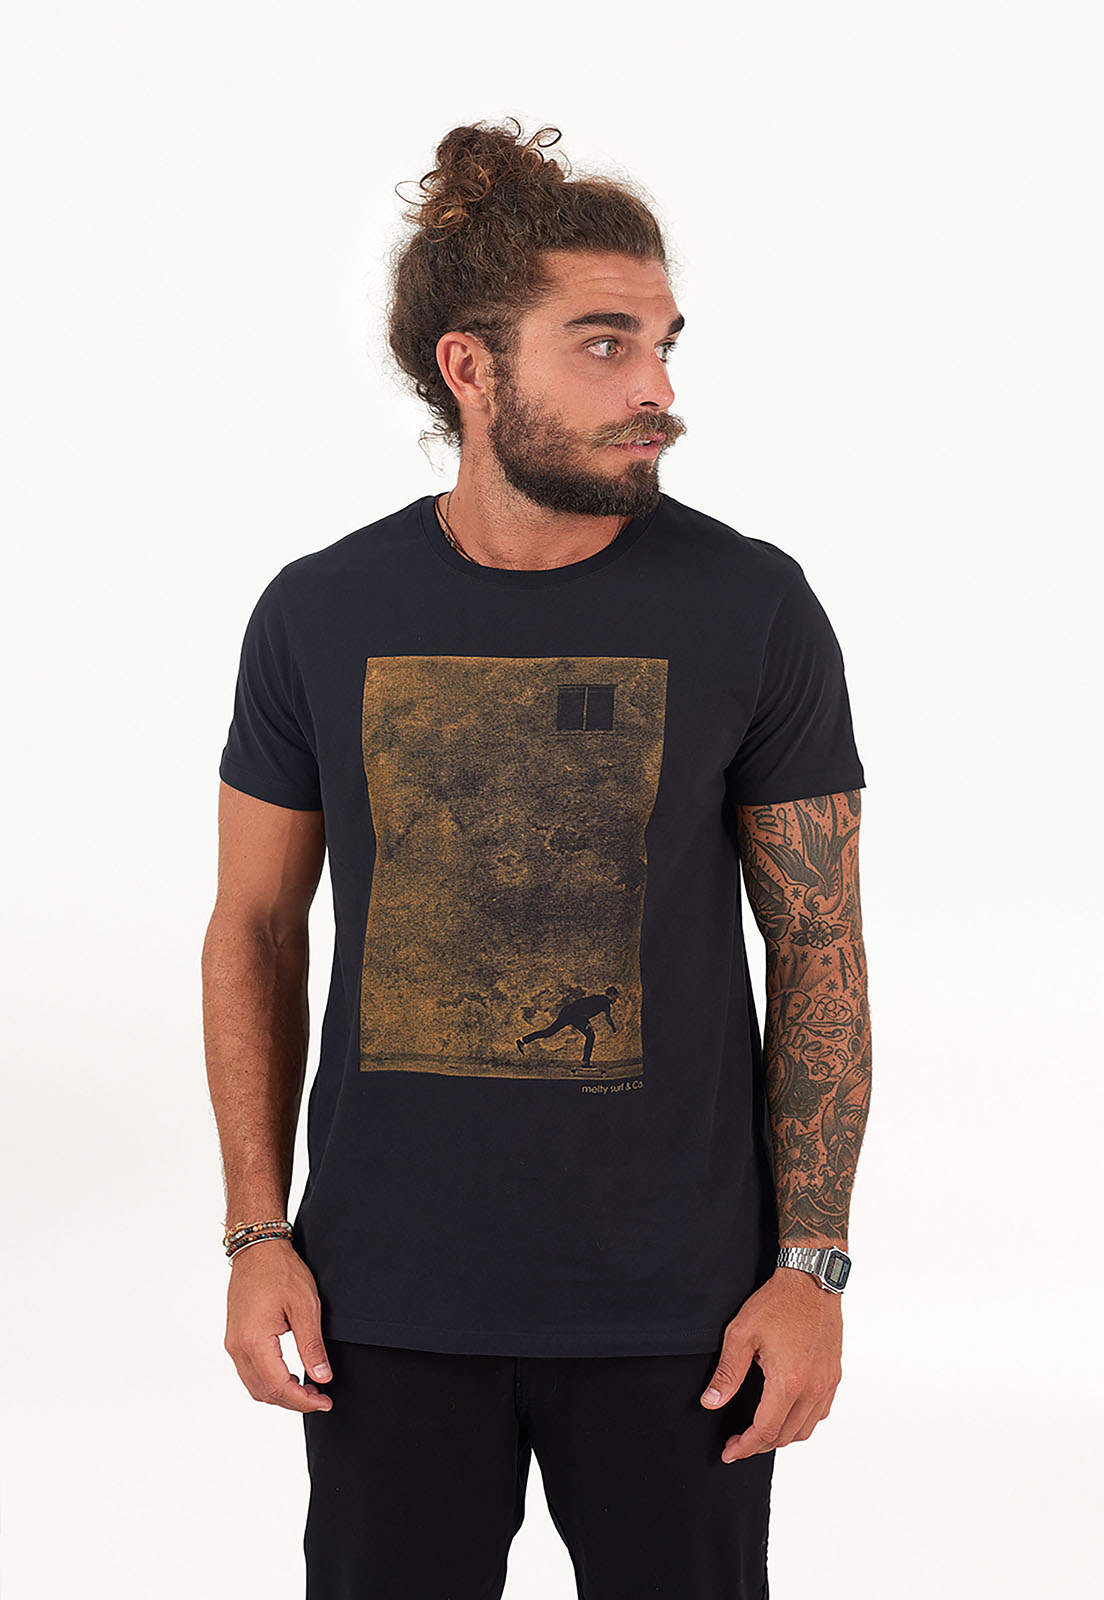 T-shirt Remada Preto melty  - melty surf & Co.